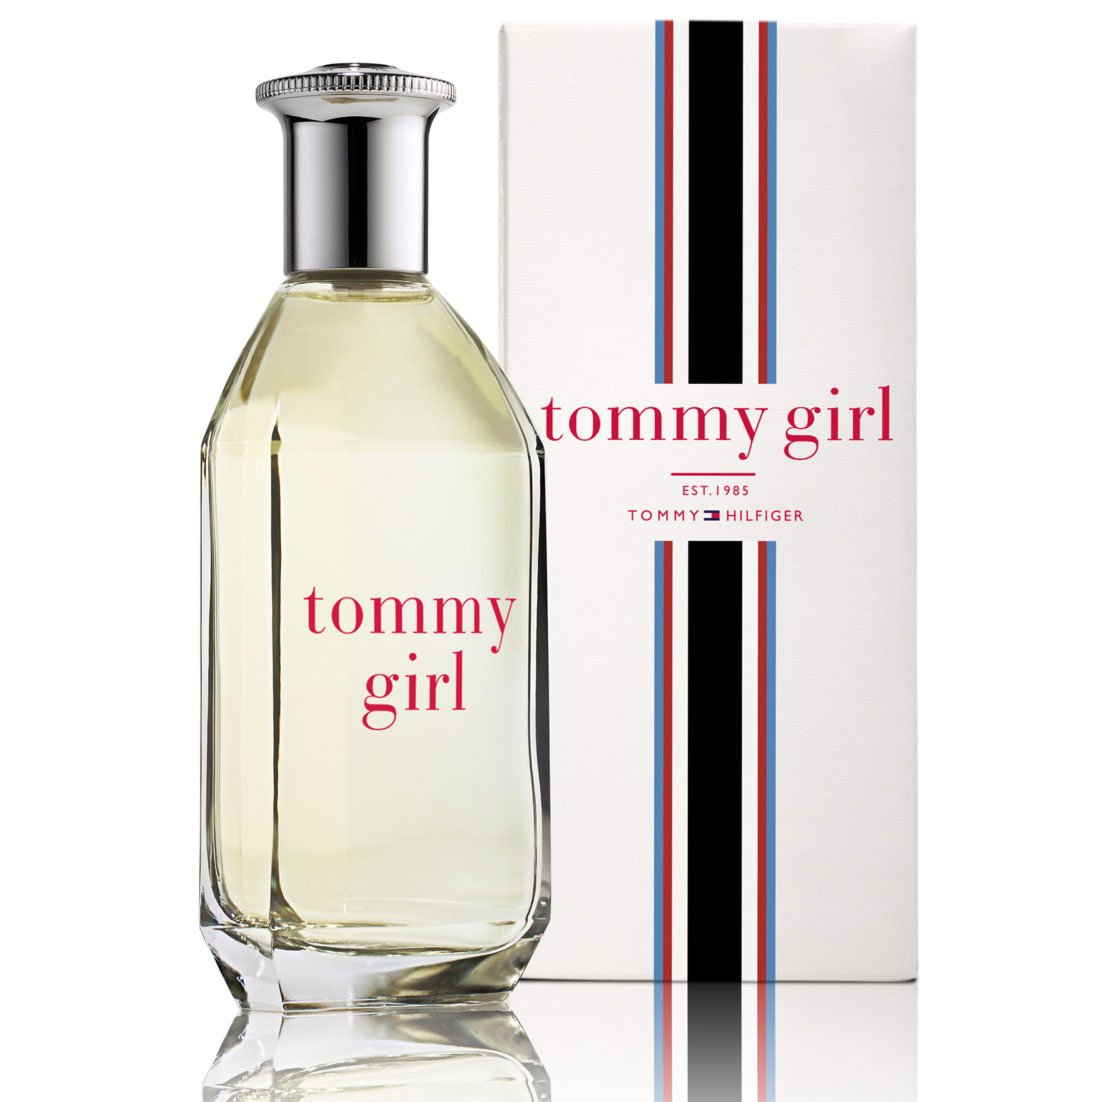 perfume tommy girl feminino edt 100 ml 6954 2000 174371